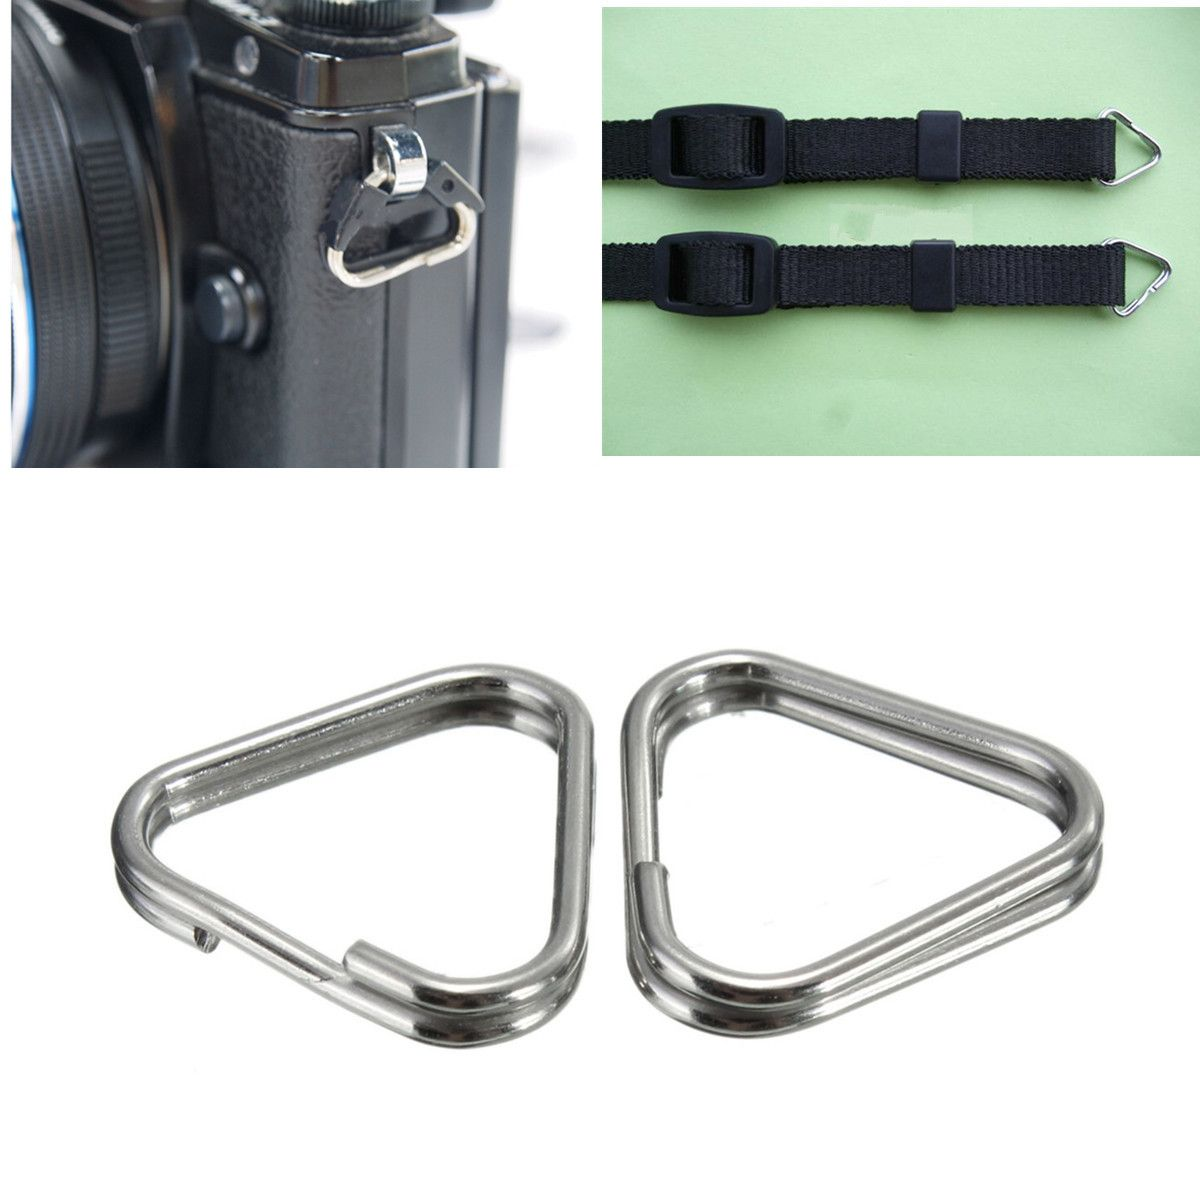 2Pcs Replacement Metal Chrome Finish Camera Strap Split Ring Triangle Rings Hook For digital Camera SLR Strap